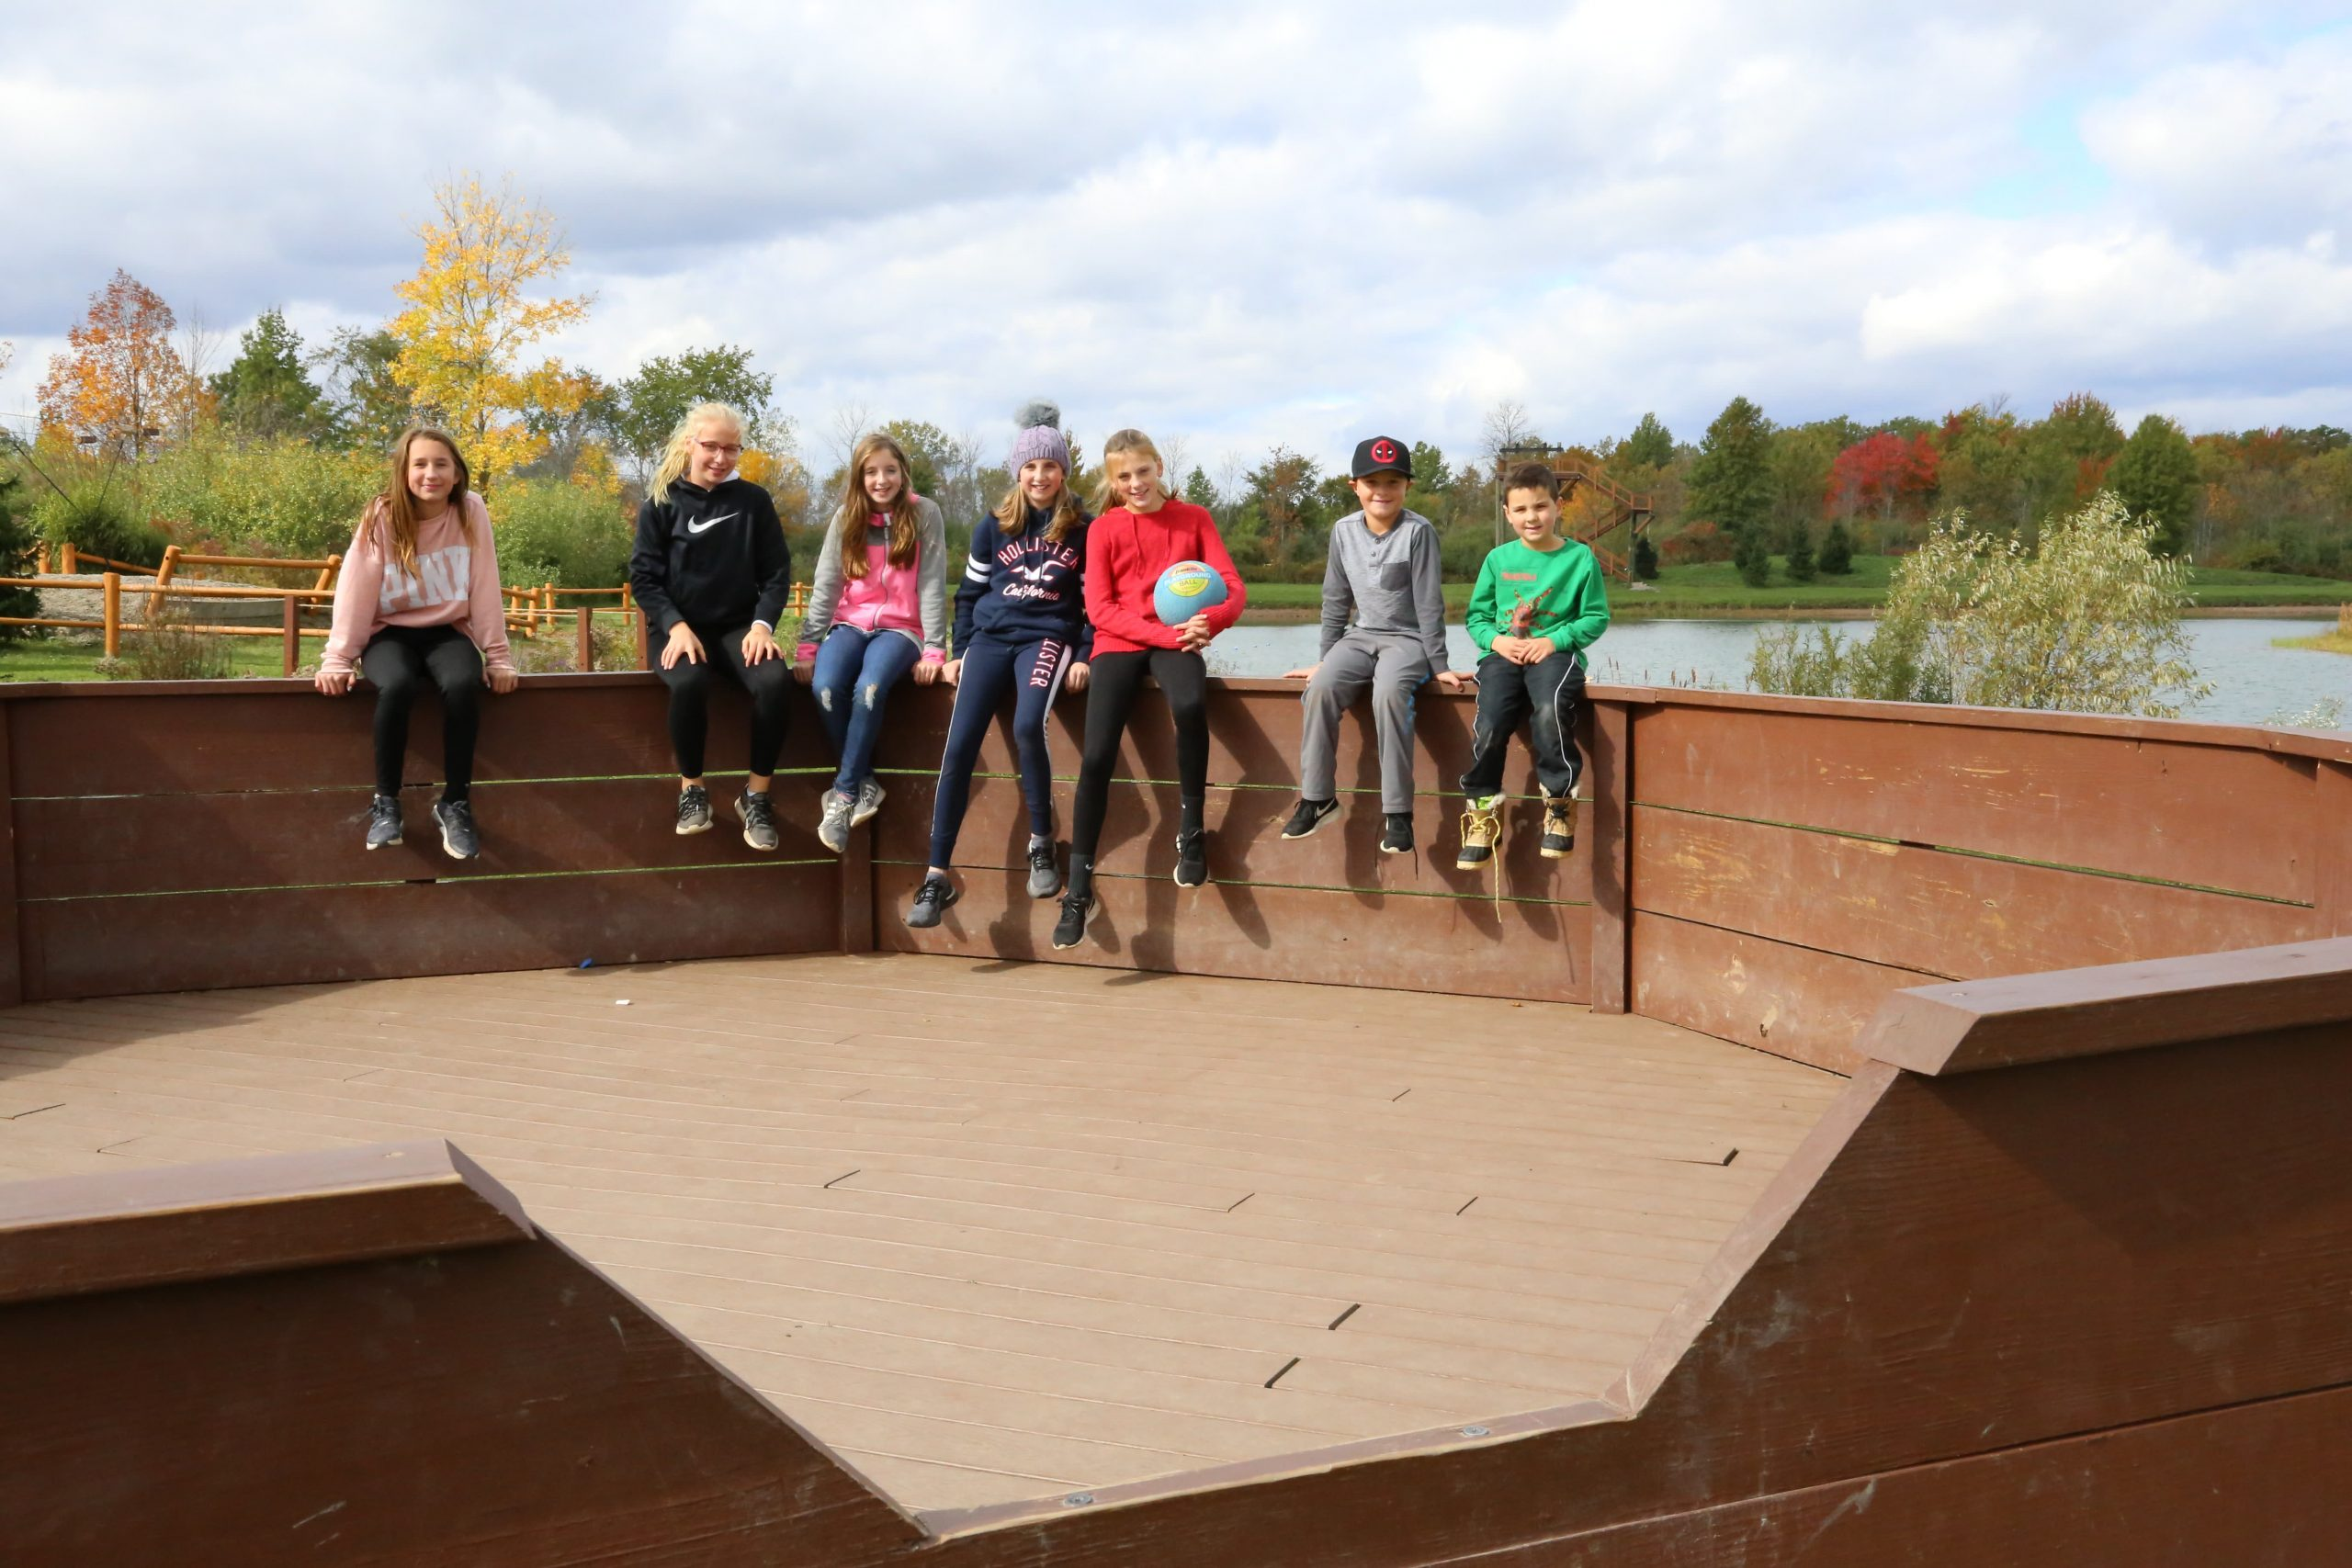 kids sitting on edge of gaga ball pit with ball